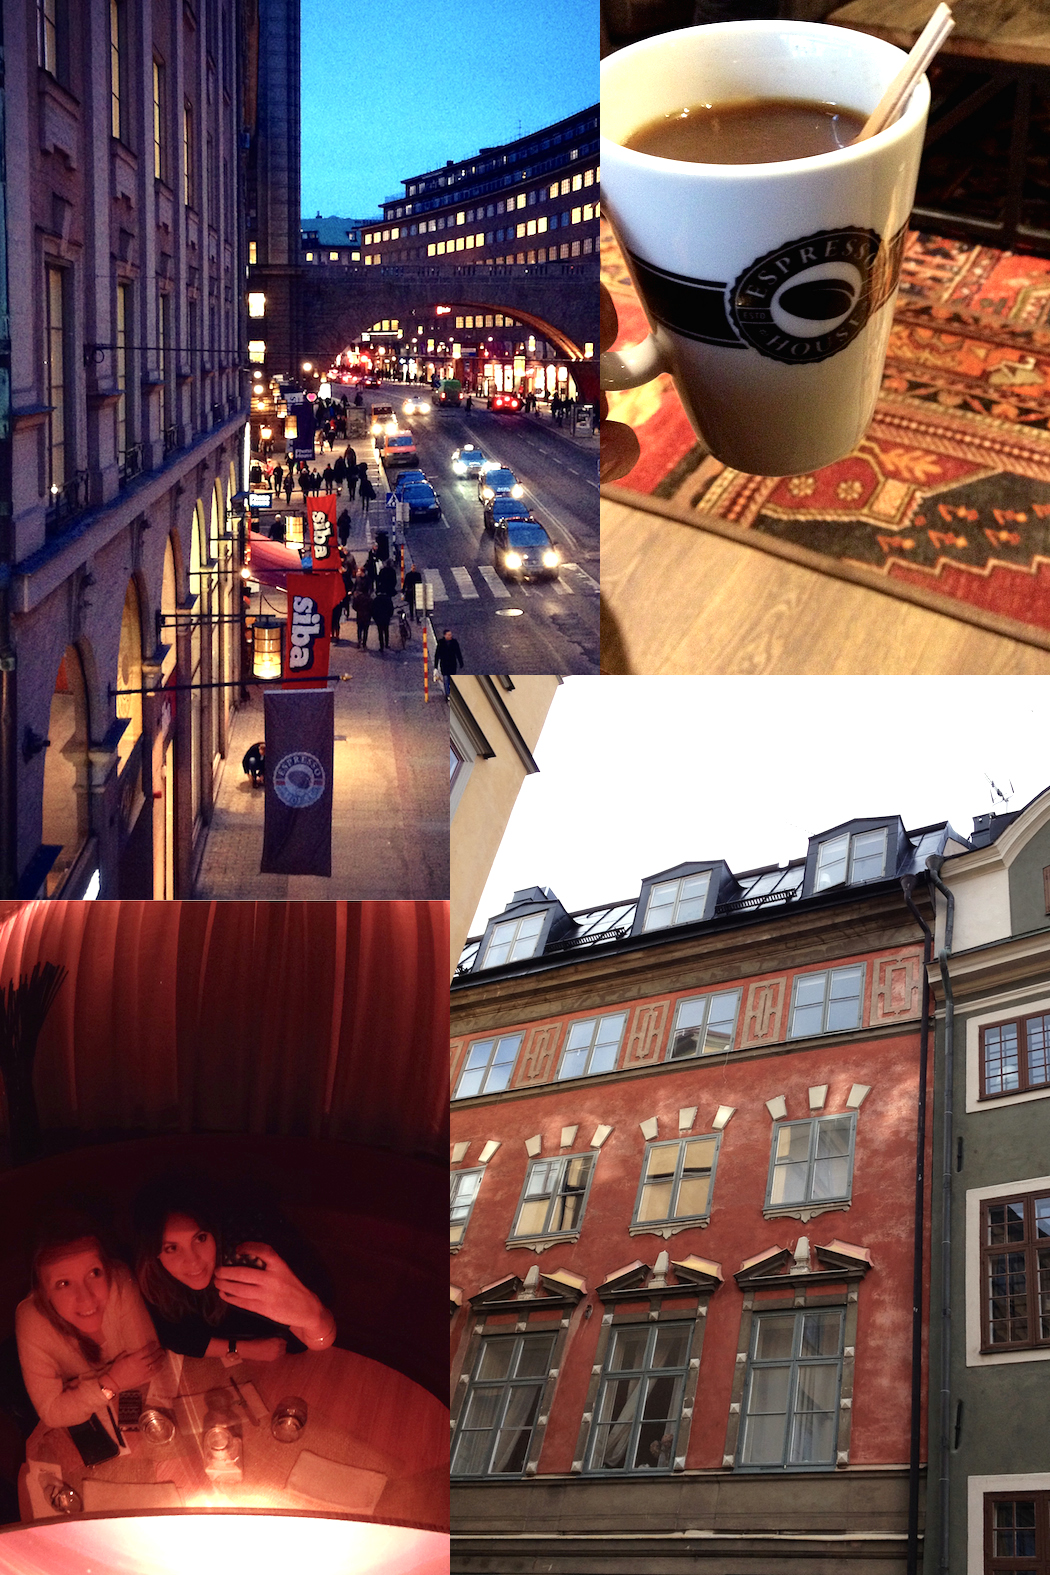 Stockholm photo diary fash-n-chips.com 6